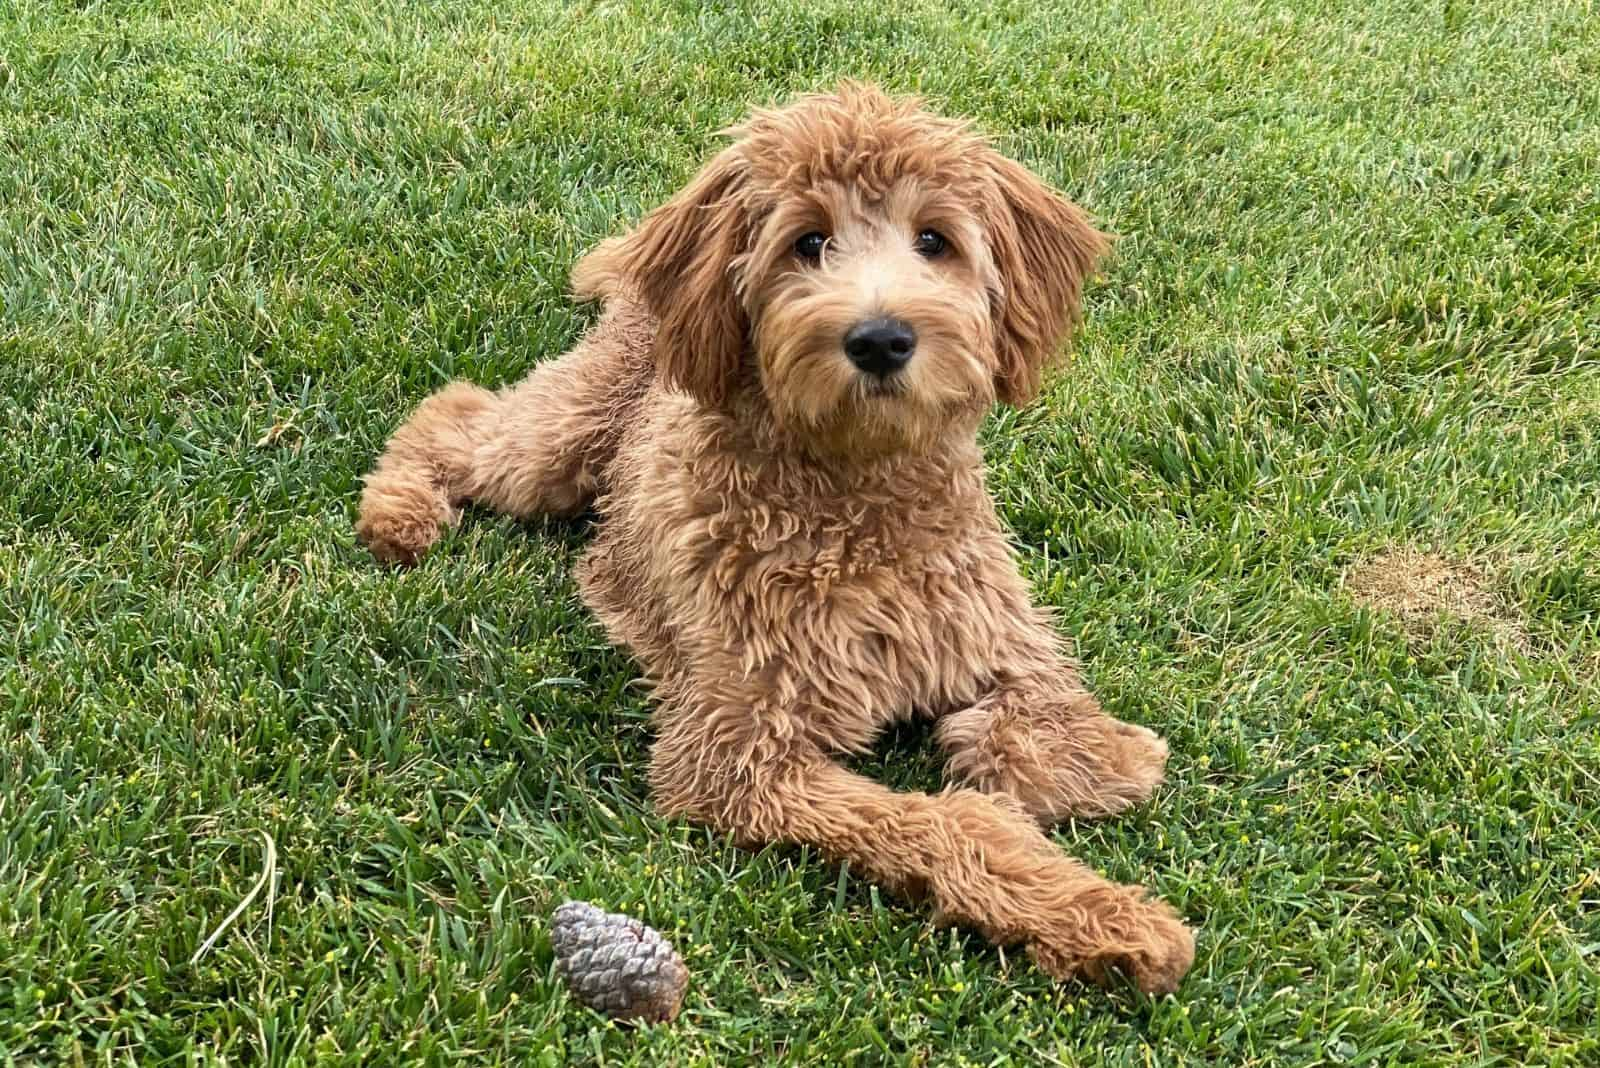 f2b female goldendoodle female lying down on the green grass outdoors